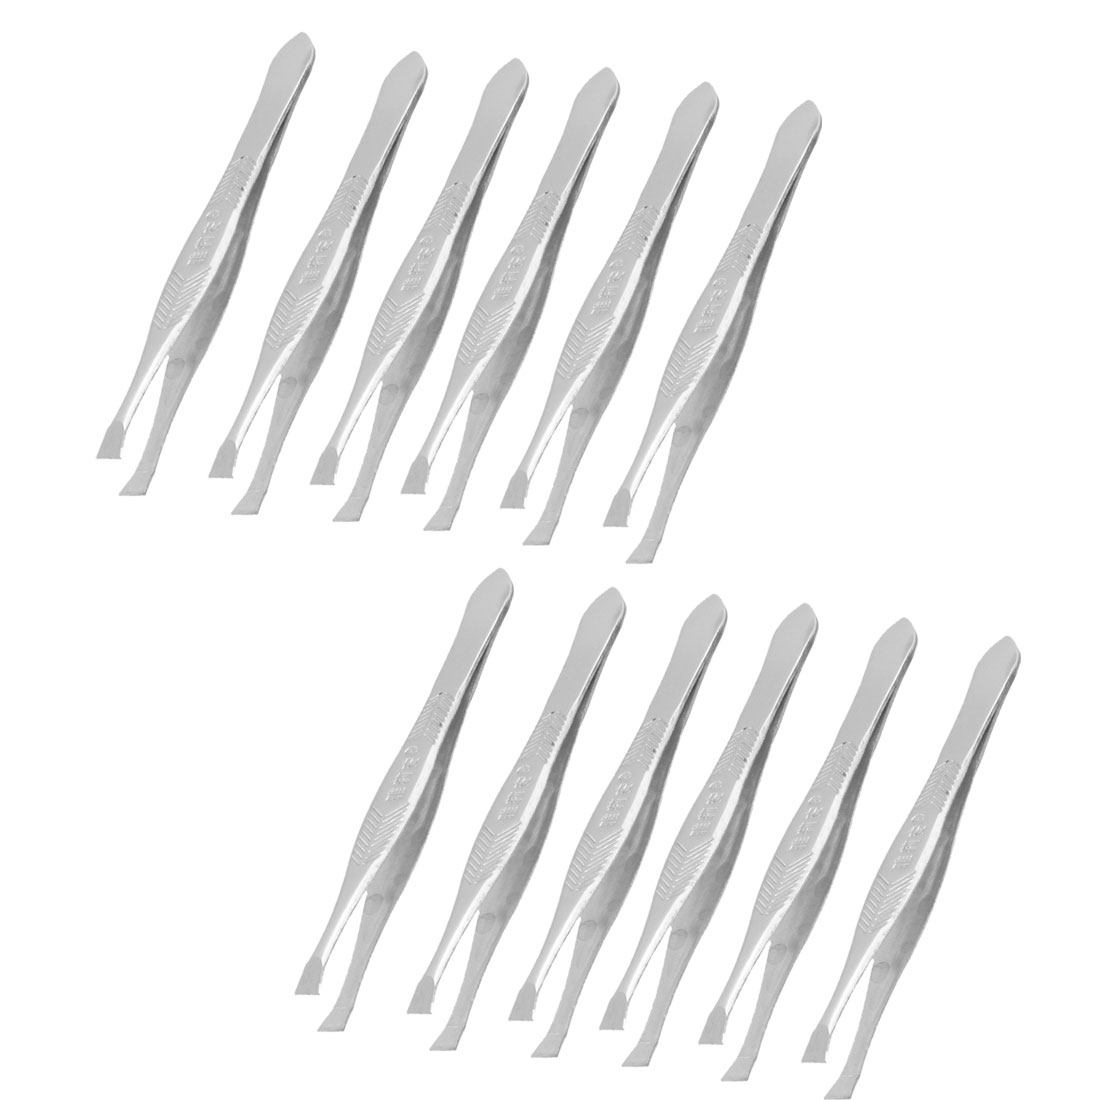 12 Pcs Flat Tip Eyebrow Trimmer Tweezers Cosmetic Tool Silver Tone